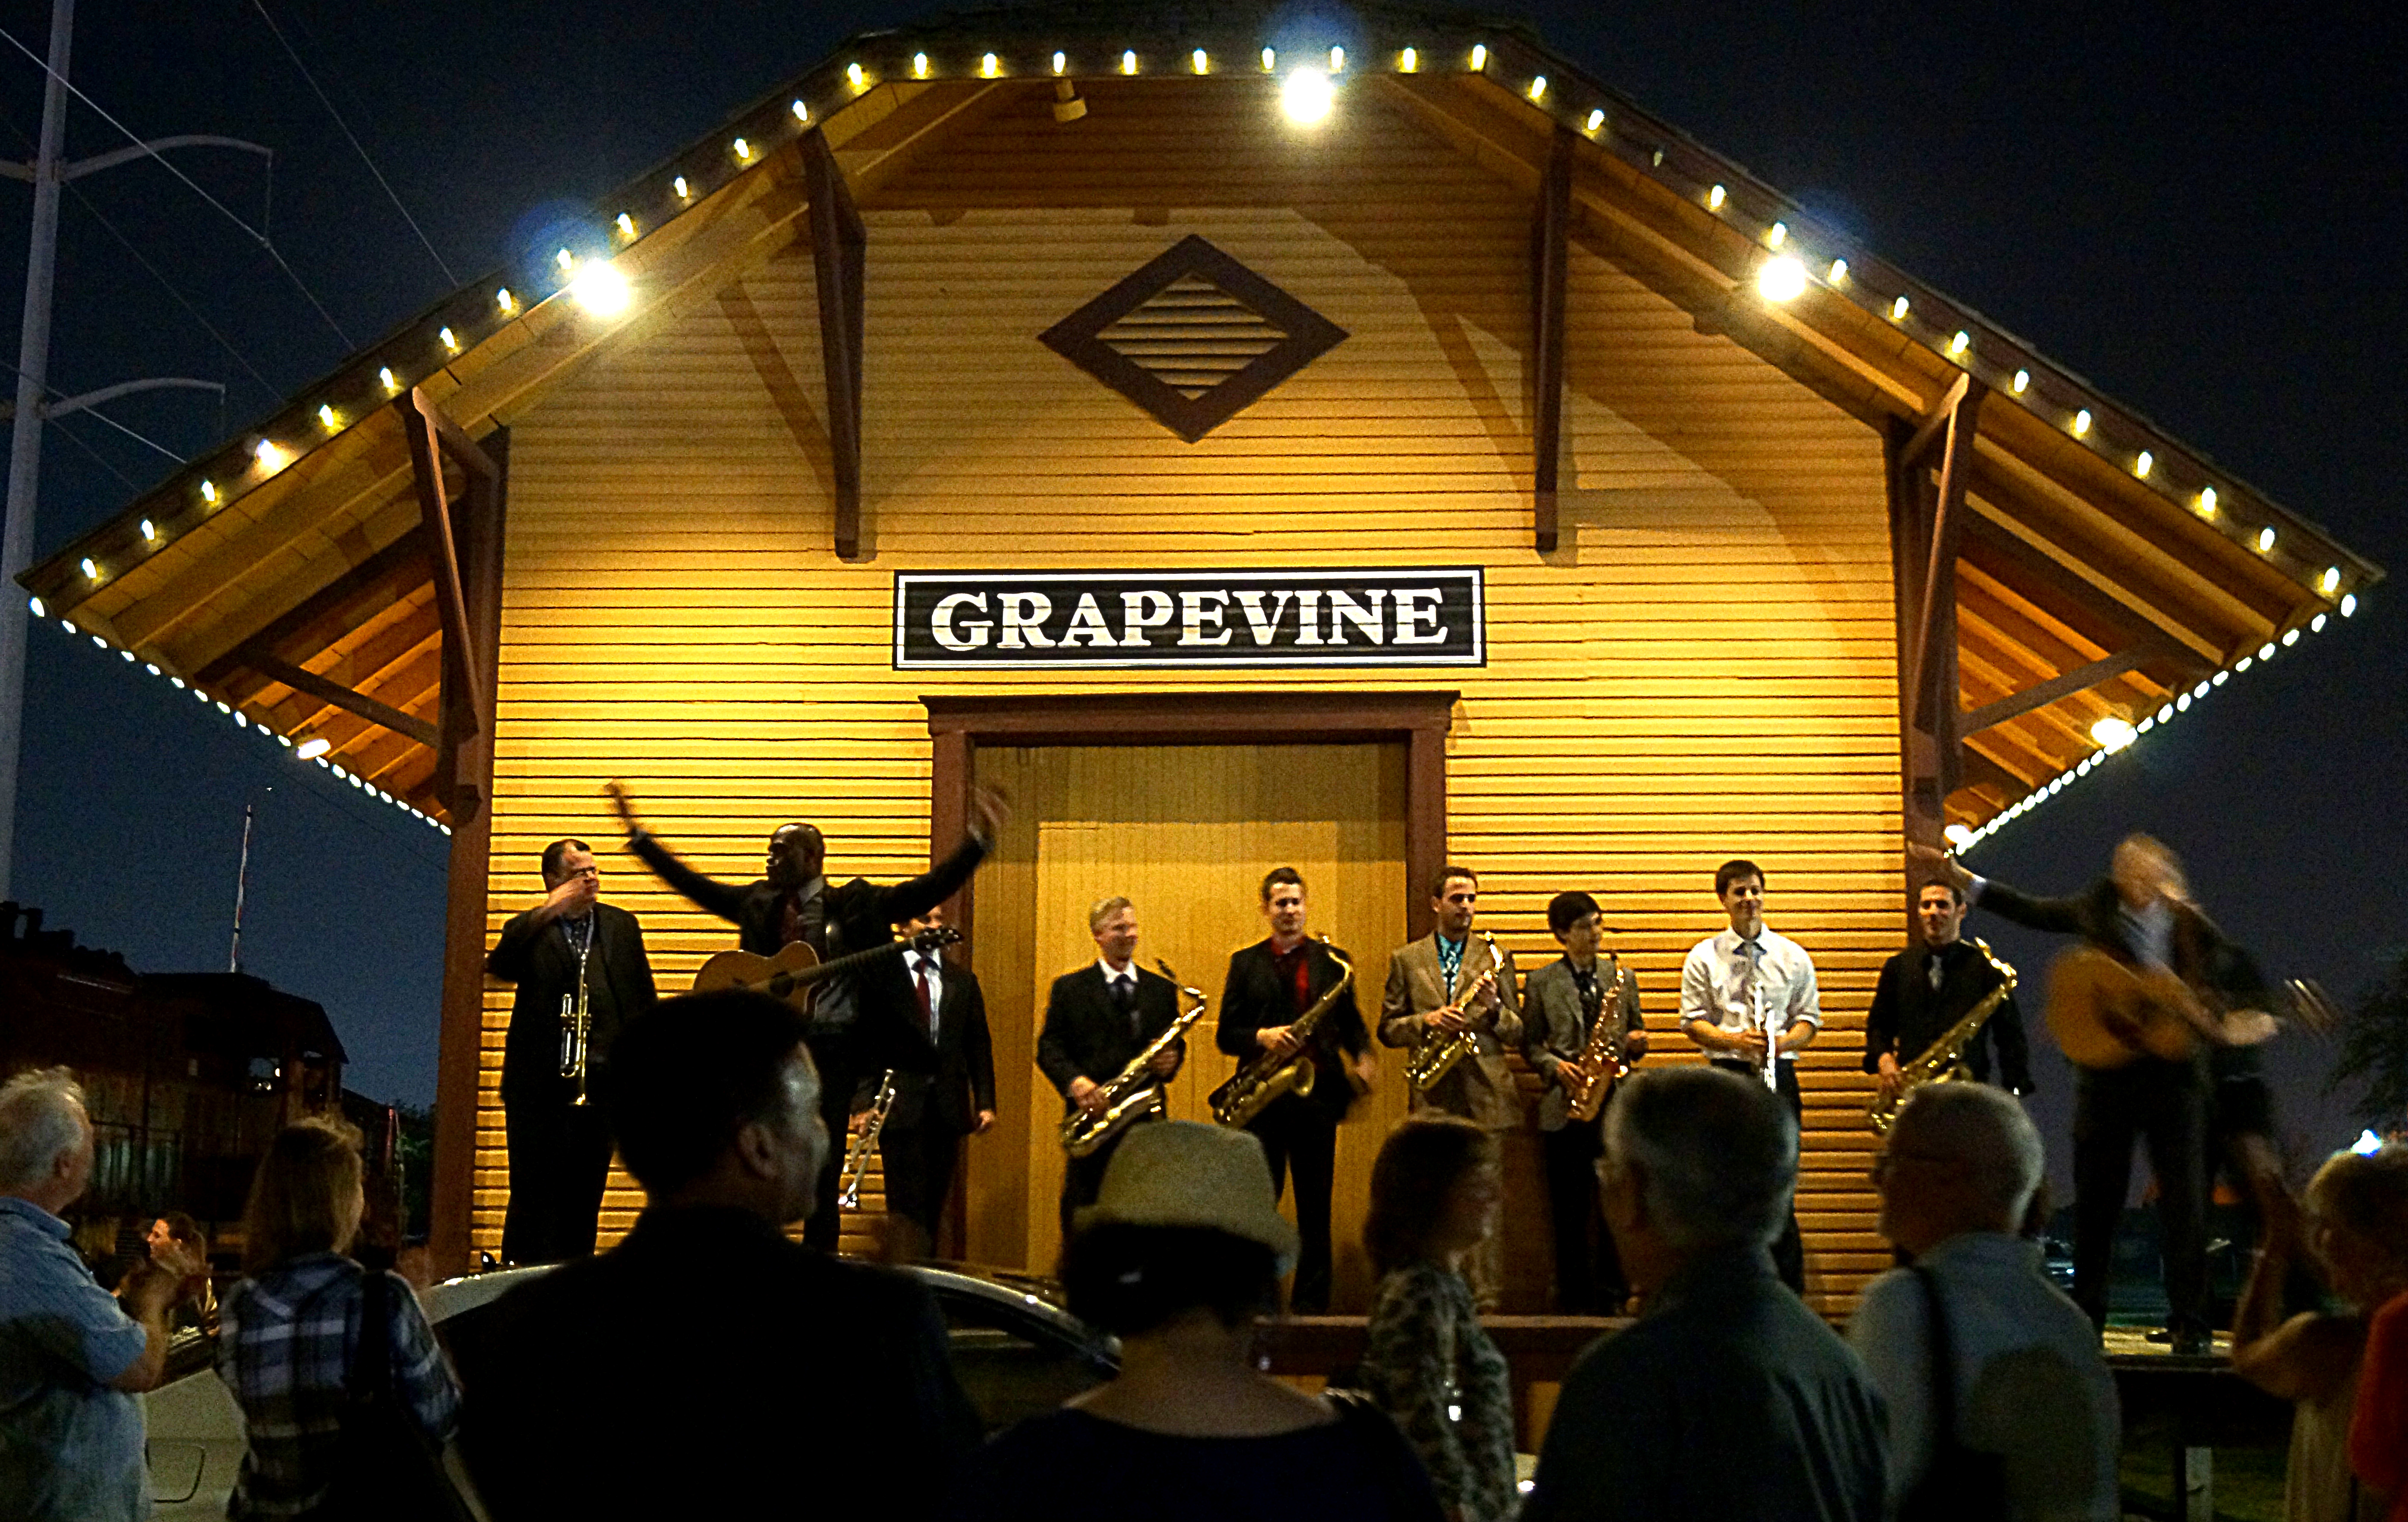 Christmas Wine Trains 2020 Grapevine Grapevine Jazz Wine Trains Info & Tickets | October 2 and 4, 2020